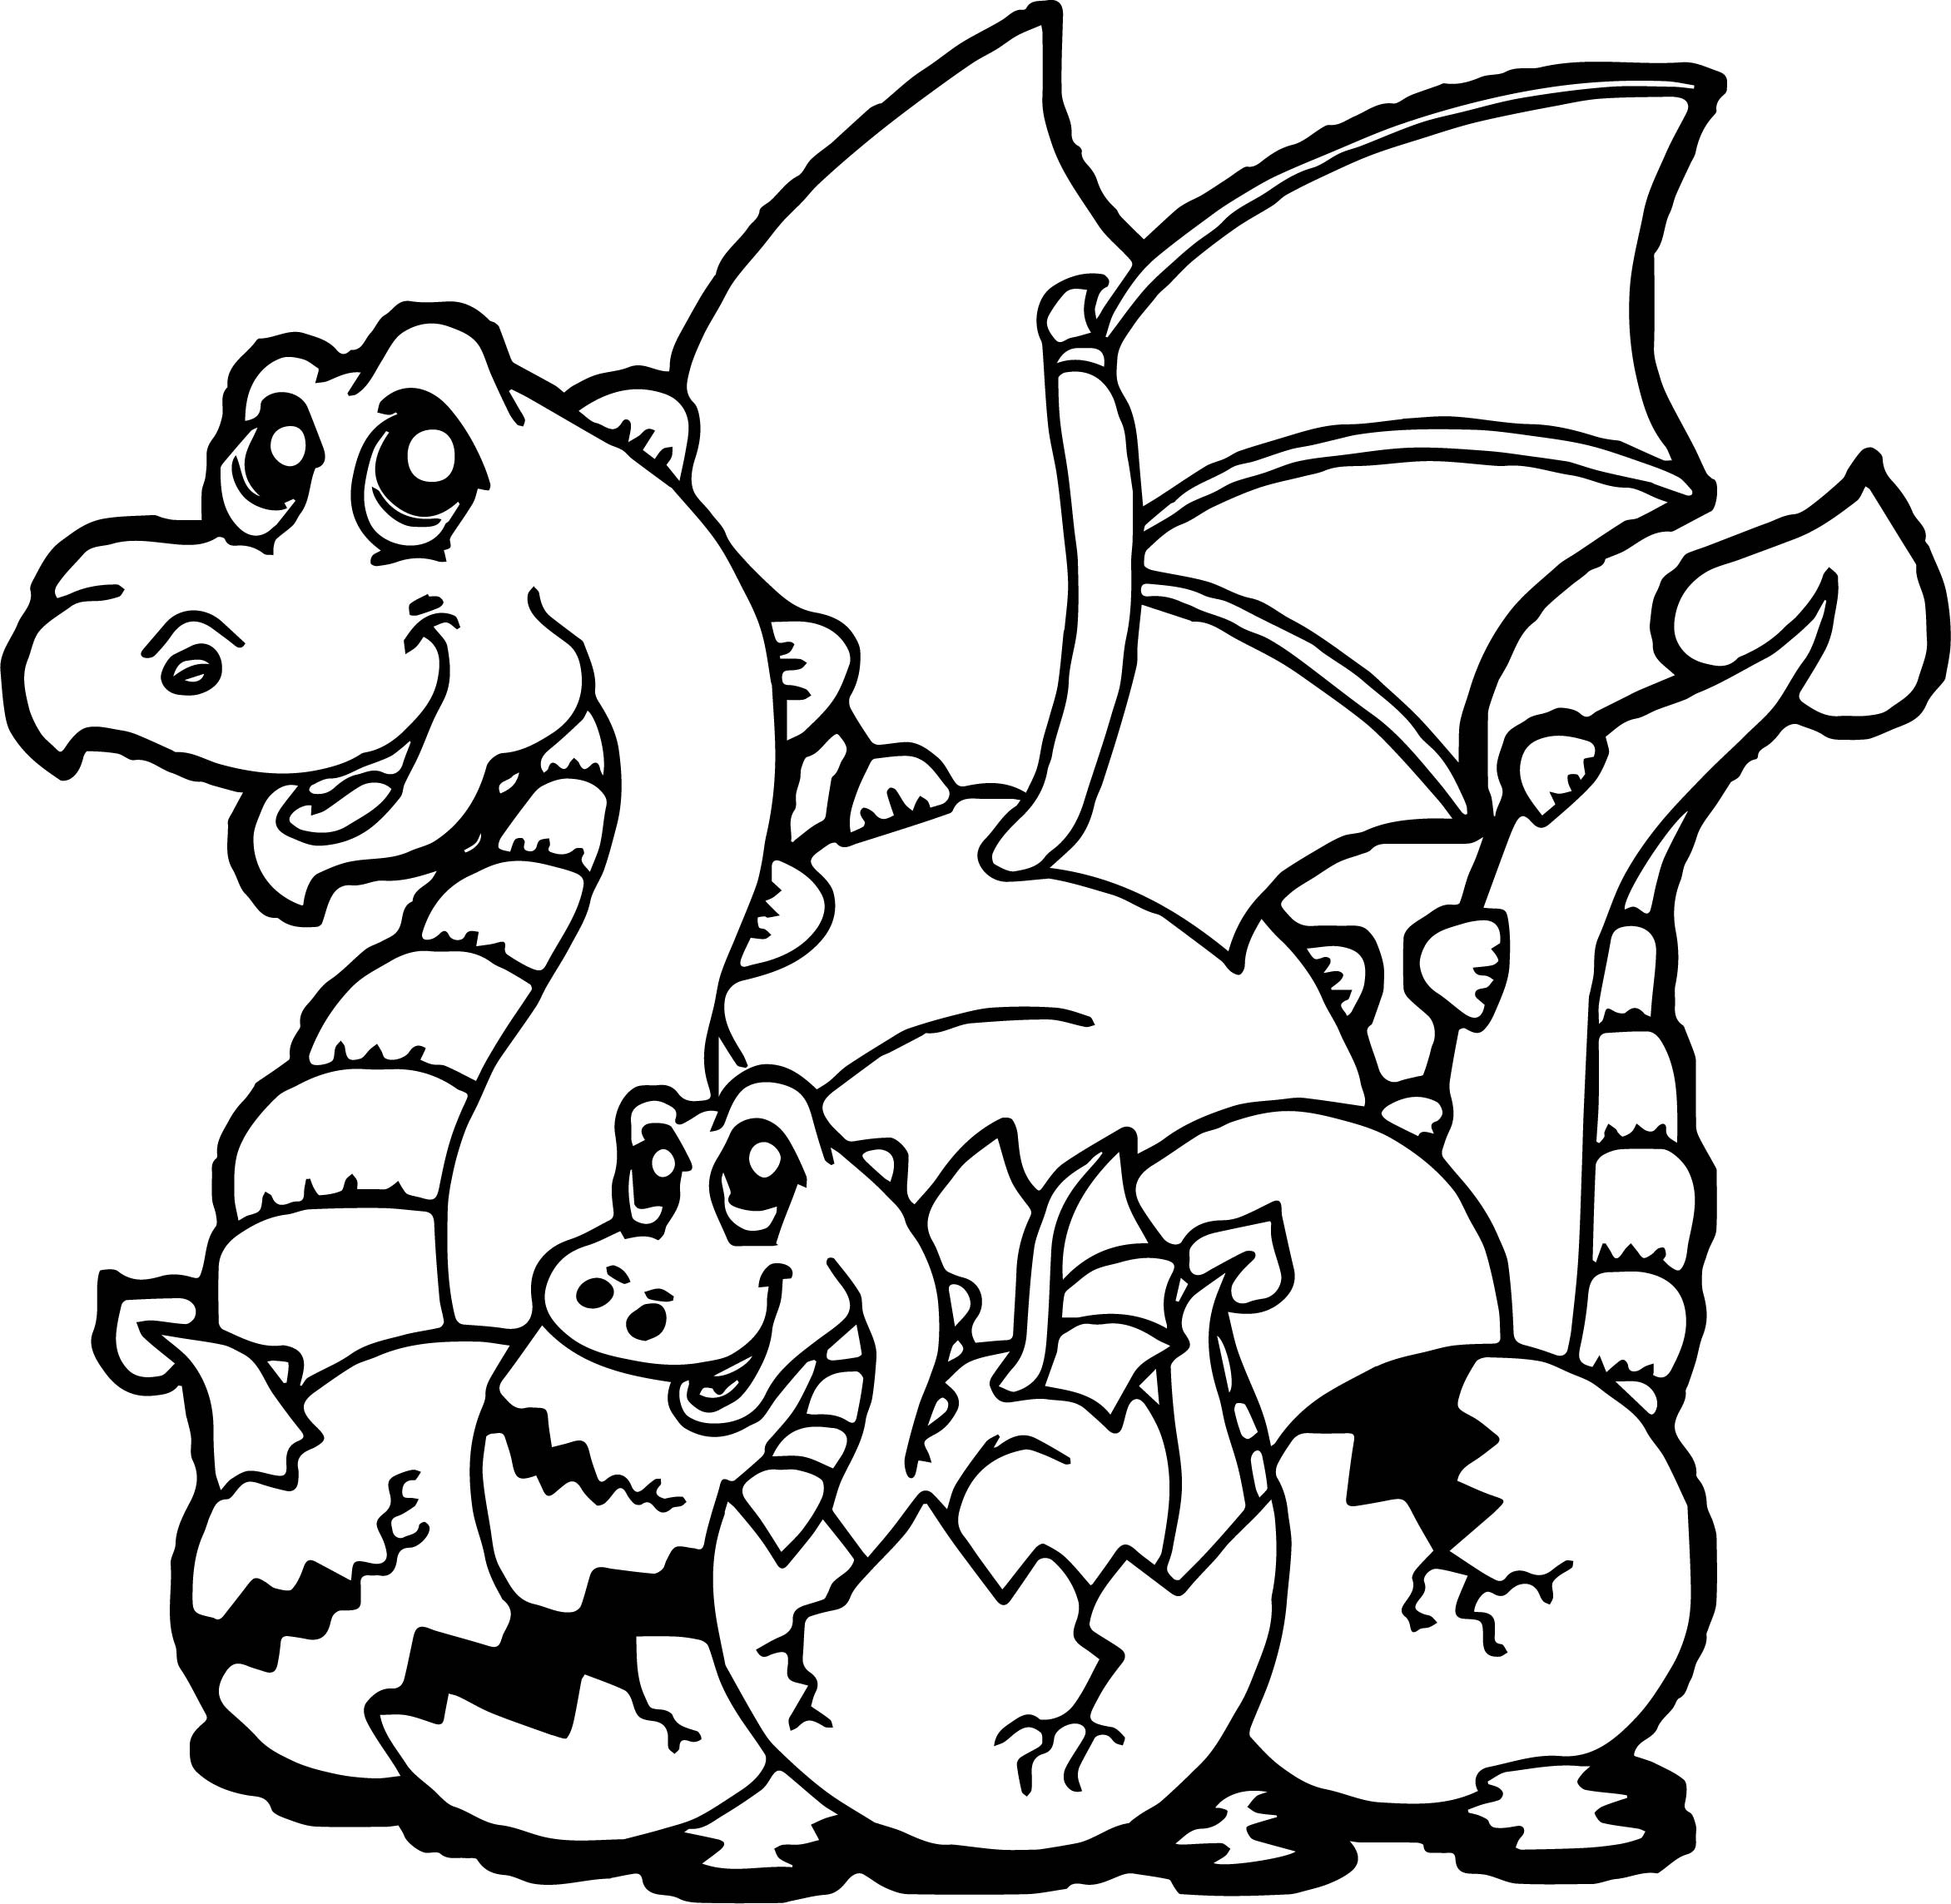 Baby Dragon Coloring Pages Pictures To Pin